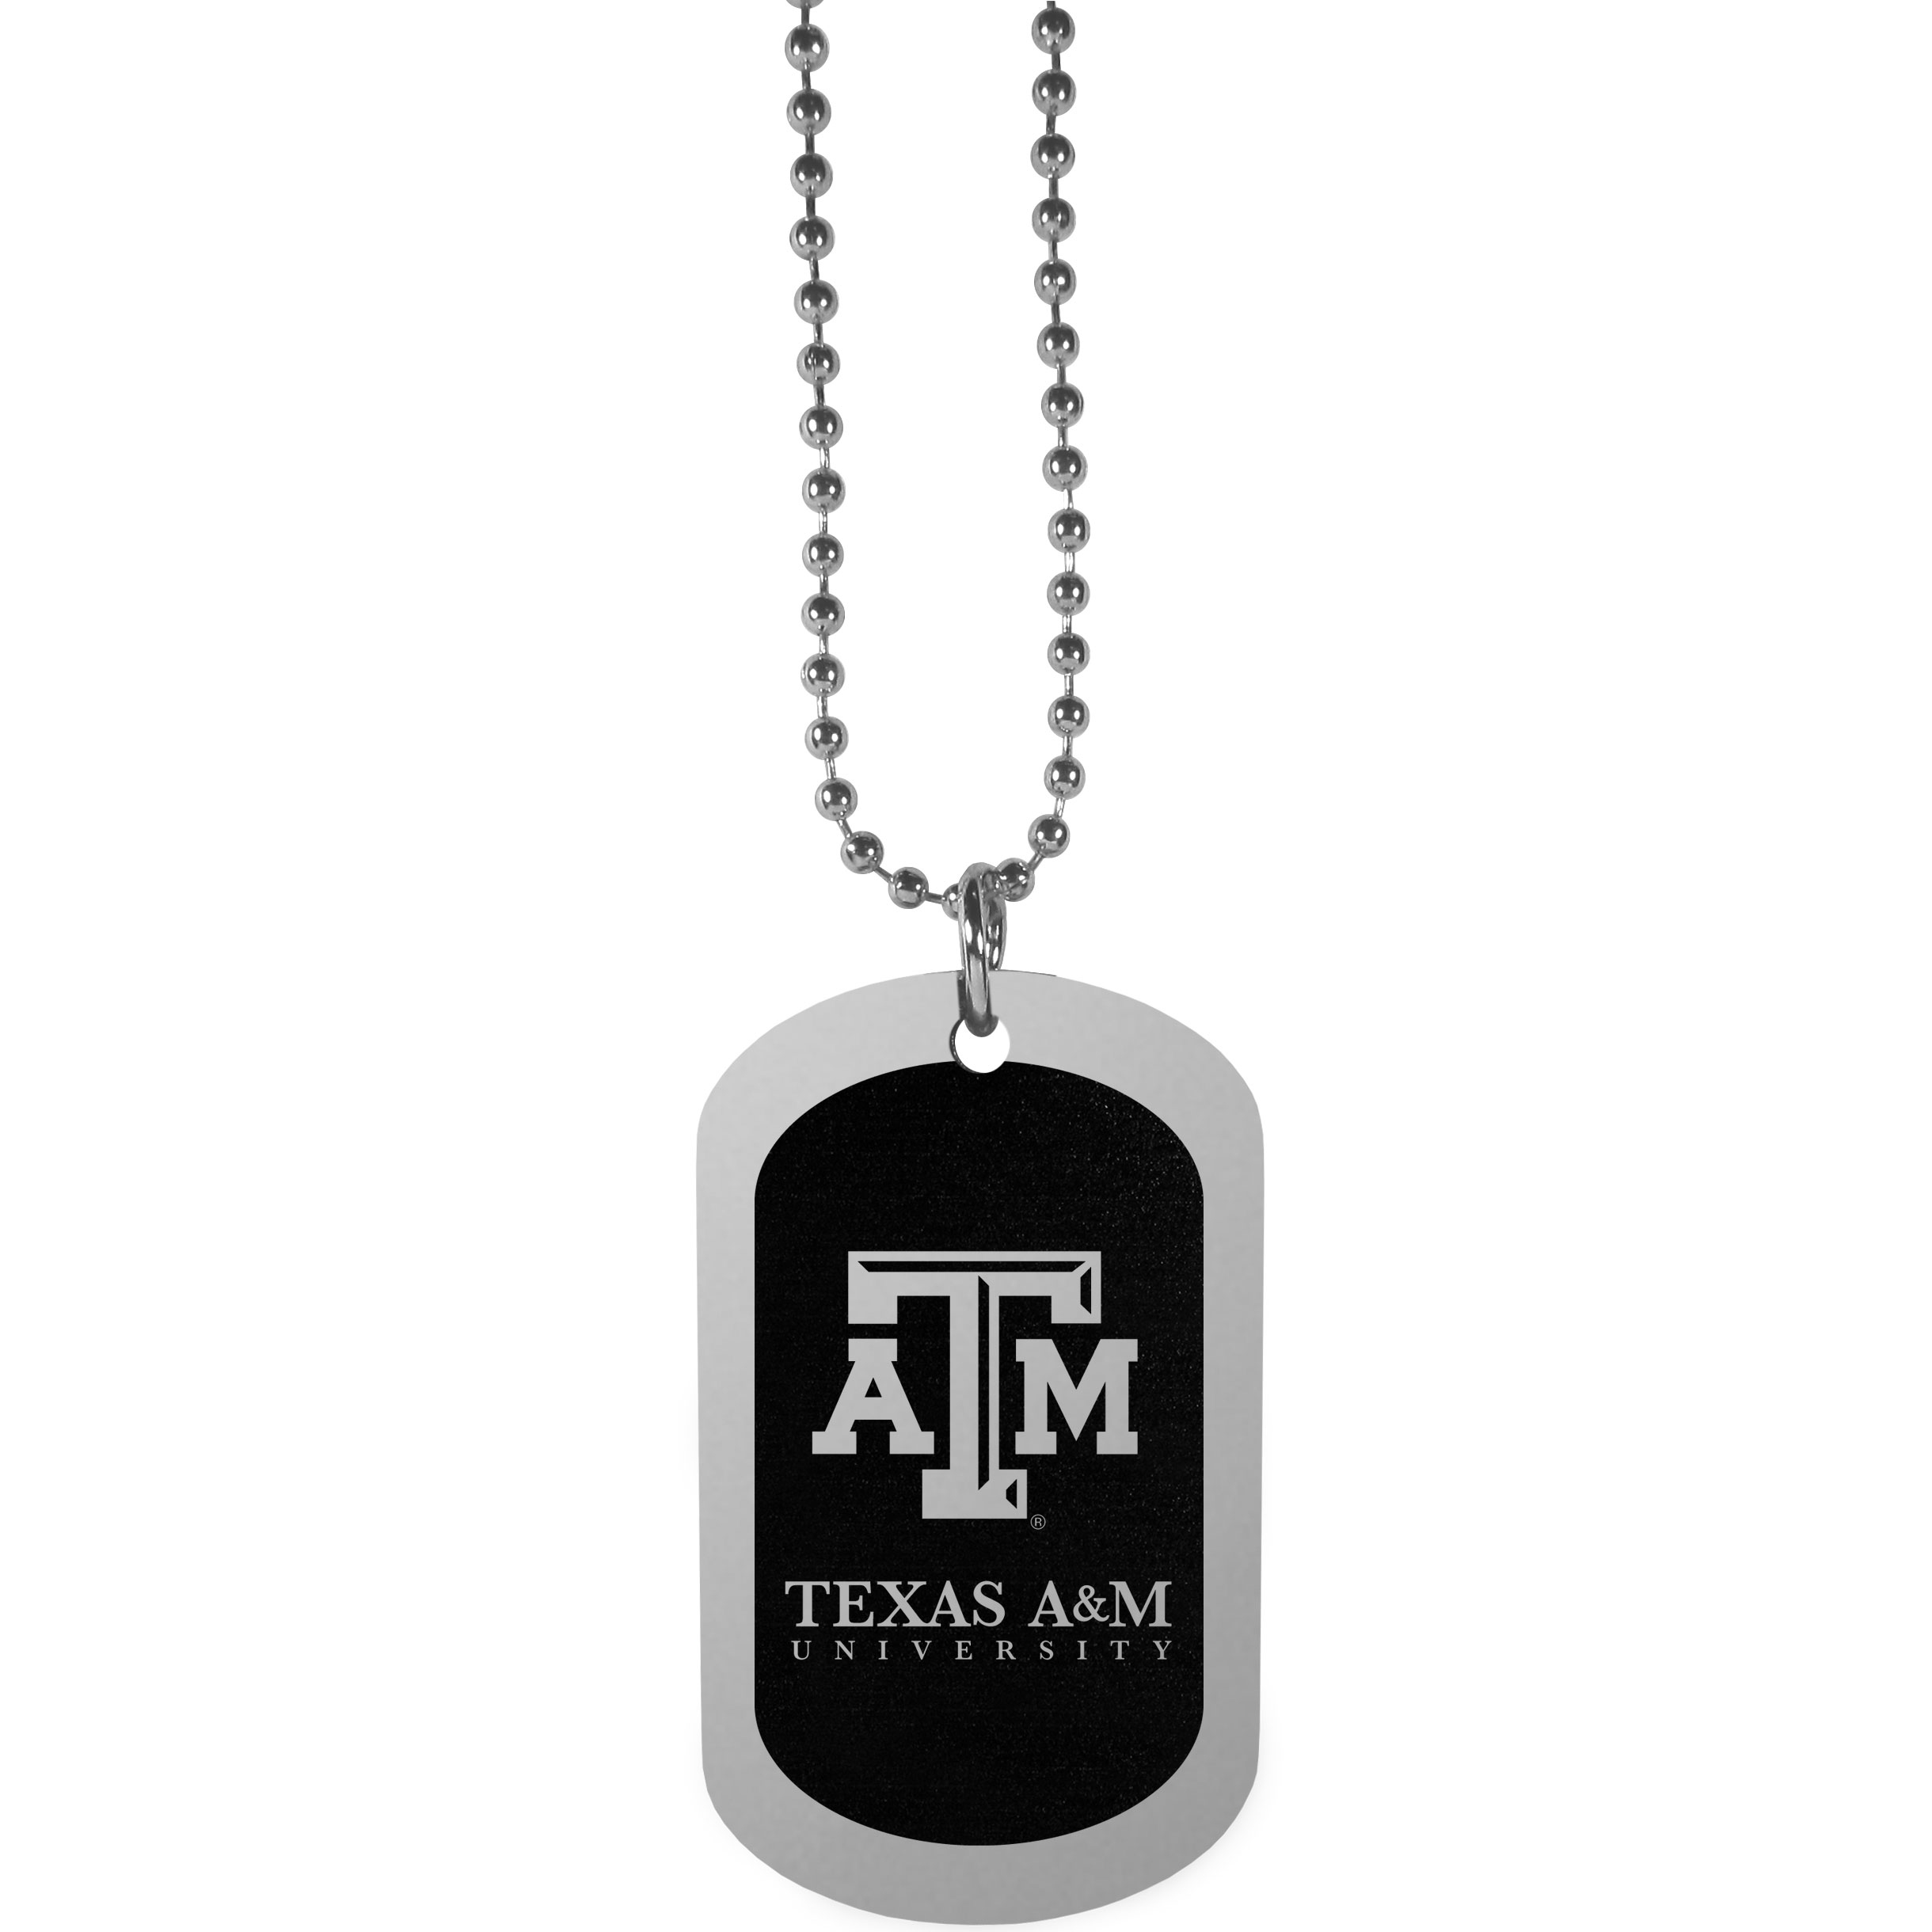 Texas A and M Aggies Chrome Tag Necklace - Dog tag necklaces are a fashion statement that is here to stay. The sporty version of the classic tag features a black printed over a high polish tag to create a bold and sporty look. The tag comes on a 26 inch ball chain with a ball and joint clasp. Any Texas A & M Aggies would be proud to wear this attractive fashion accessory.